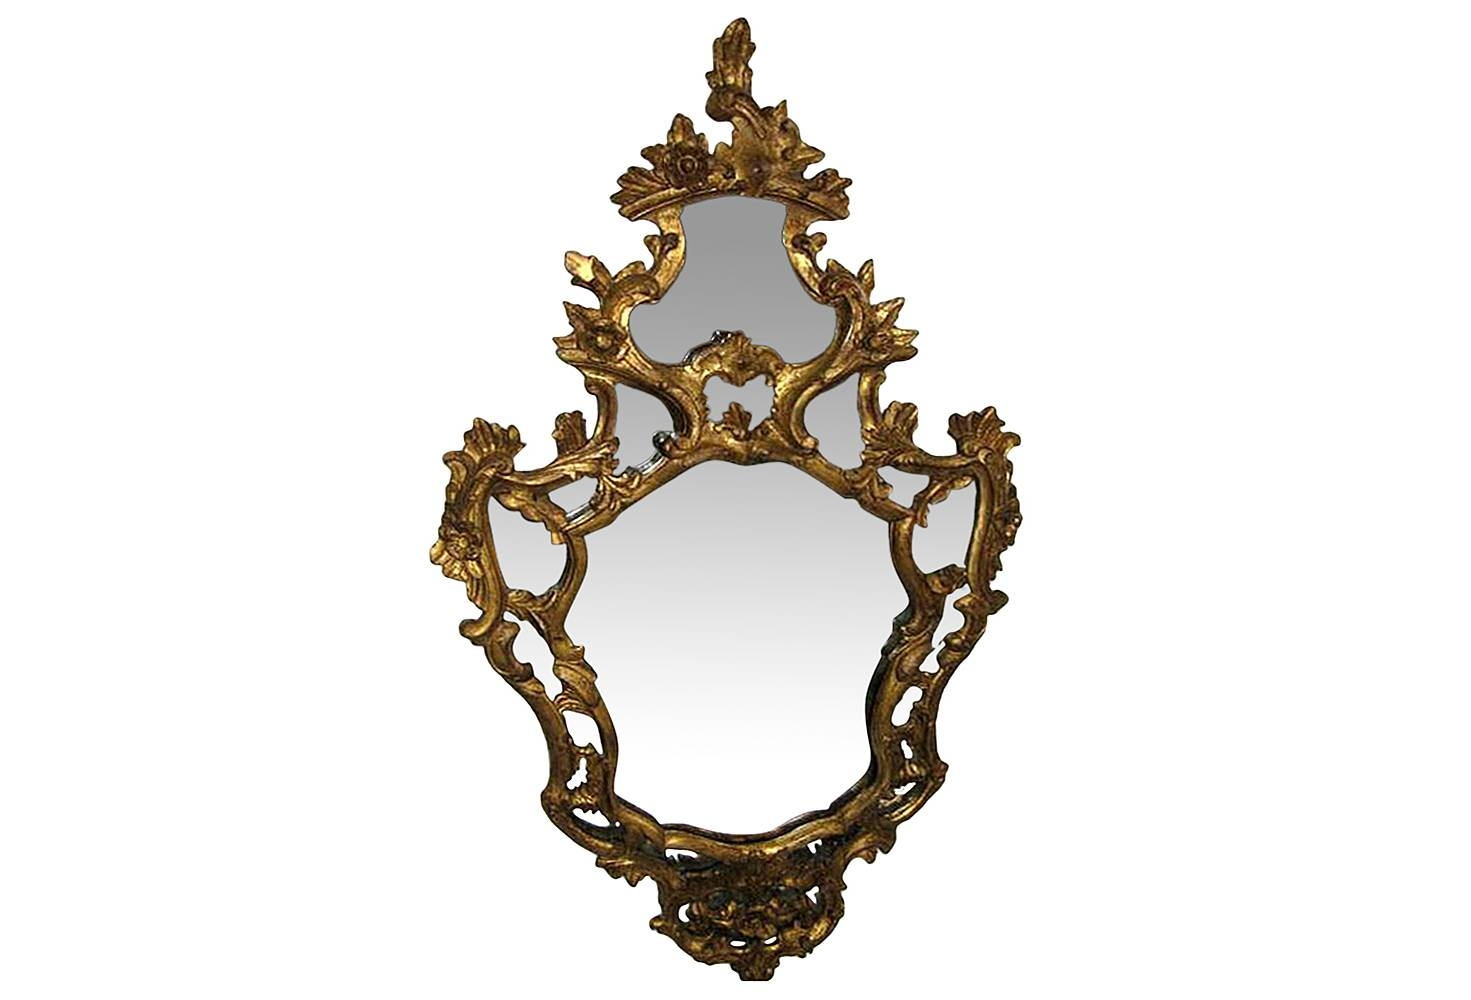 Vintage Mirrors – Antique Mirrors | Omero Home With Gold Rococo Mirrors (View 25 of 25)